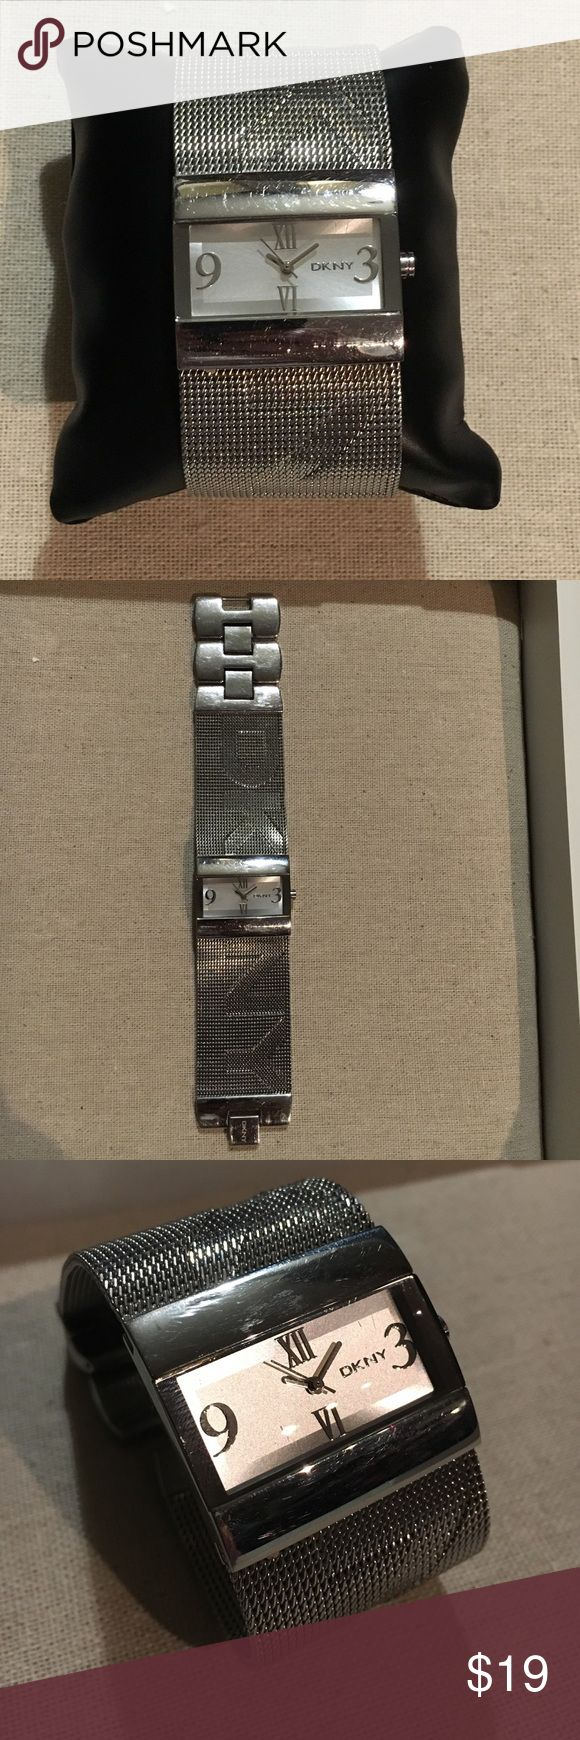 DNKY Mesh Band Watch Stainless Steel mesh band watch- Two removable links- Battery does need replaced DKNY Accessories Watches